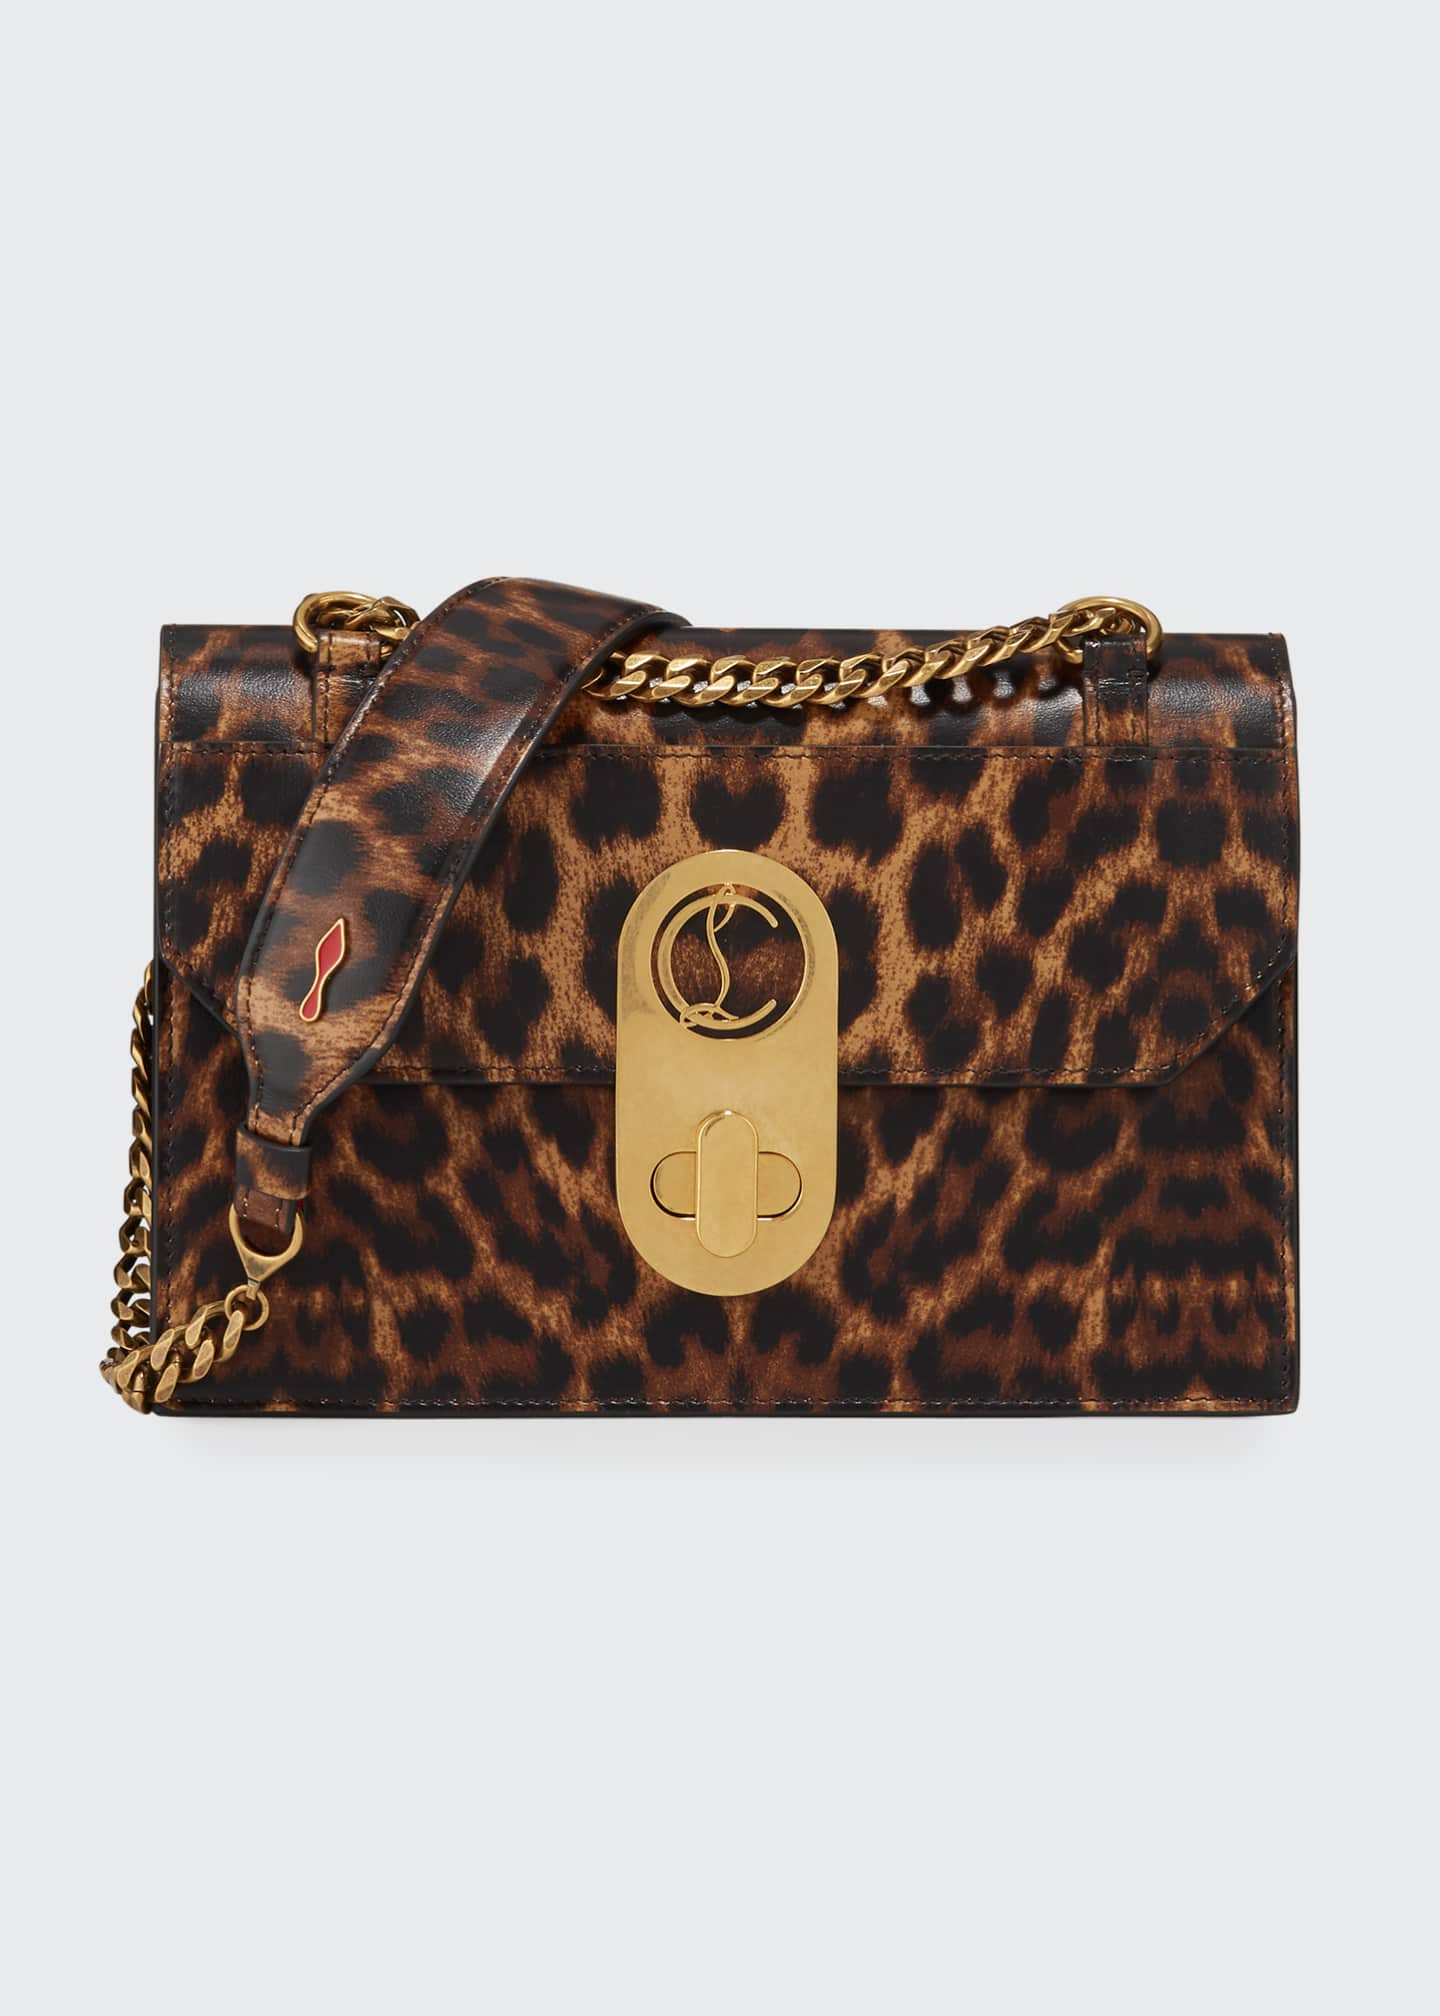 Christian Louboutin Elisa Small Leopard Shoulder Bag